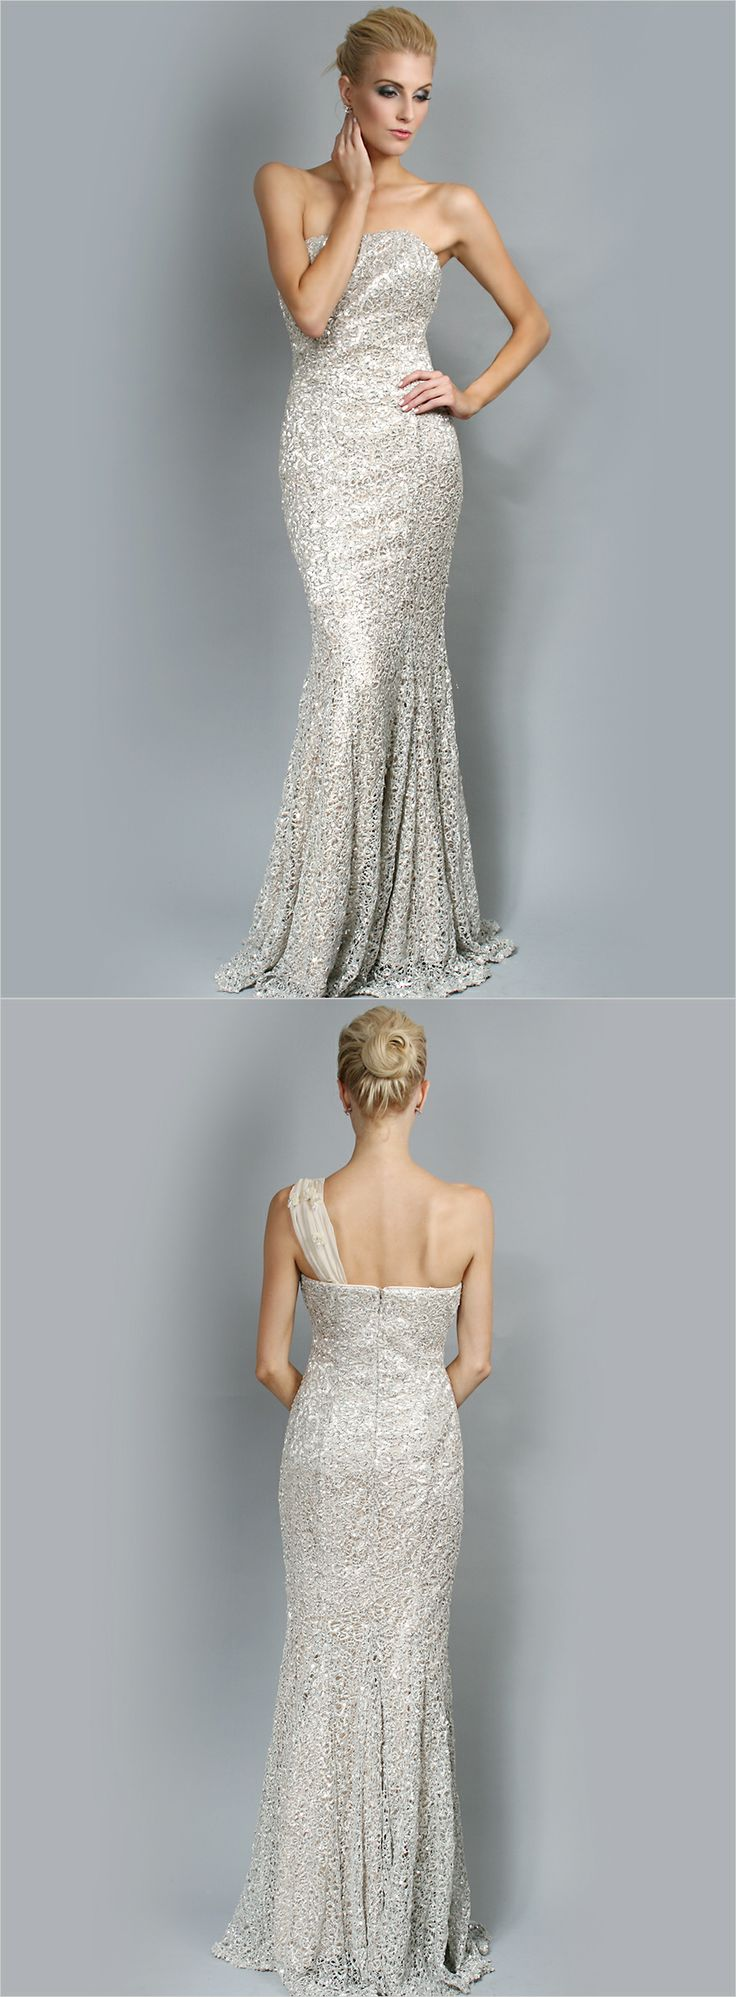 Really? I can't get over this sequence gown from White Runway, it is so dang pretty! http://whiterunway.com.au/